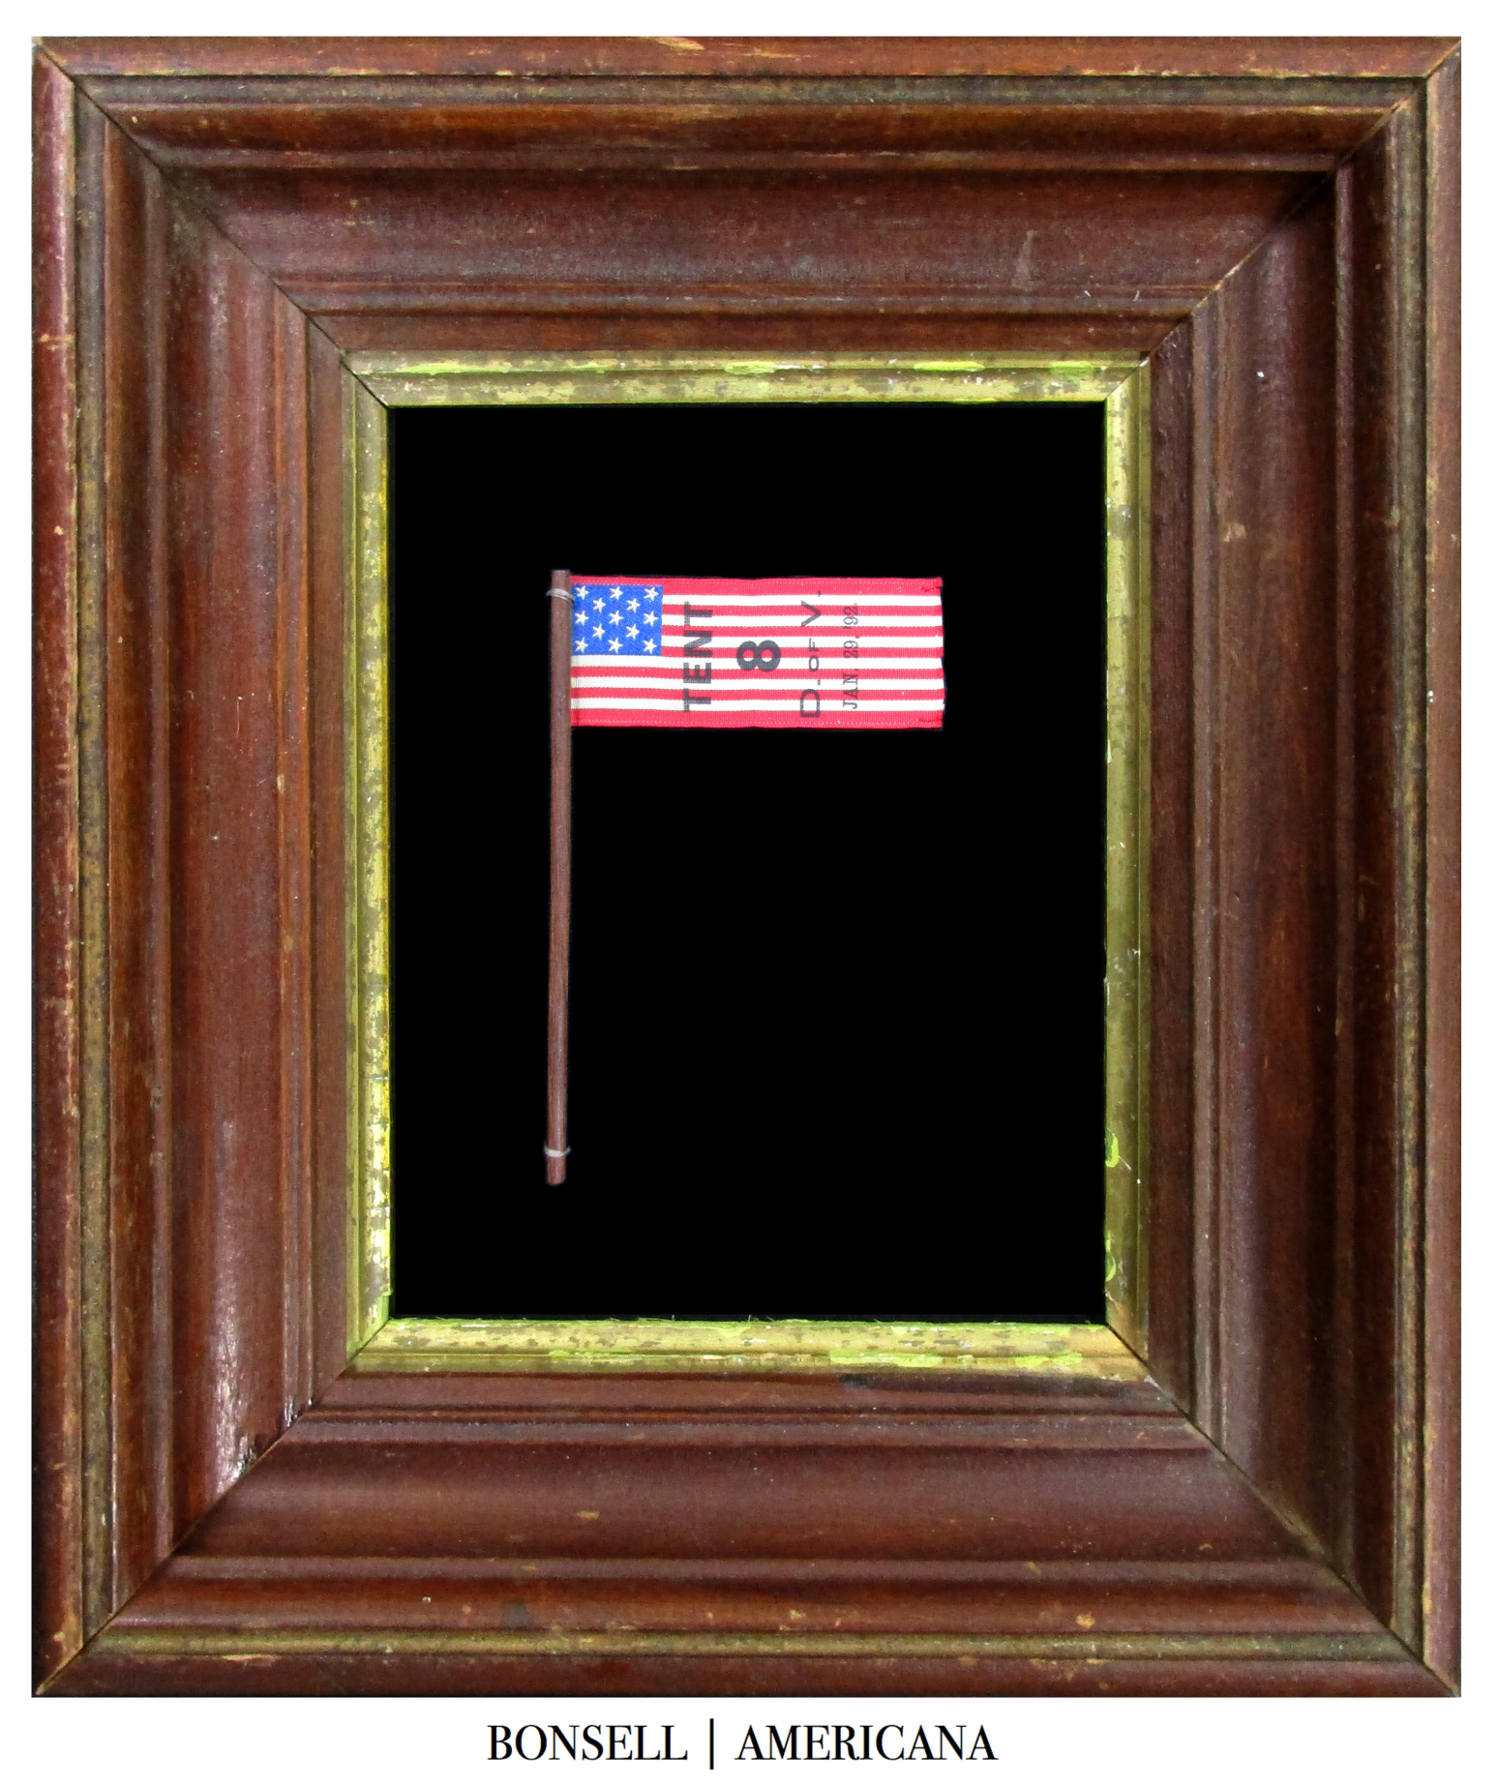 13 Star Antique Parade Flag | Made for the Daughters of Union Veterans